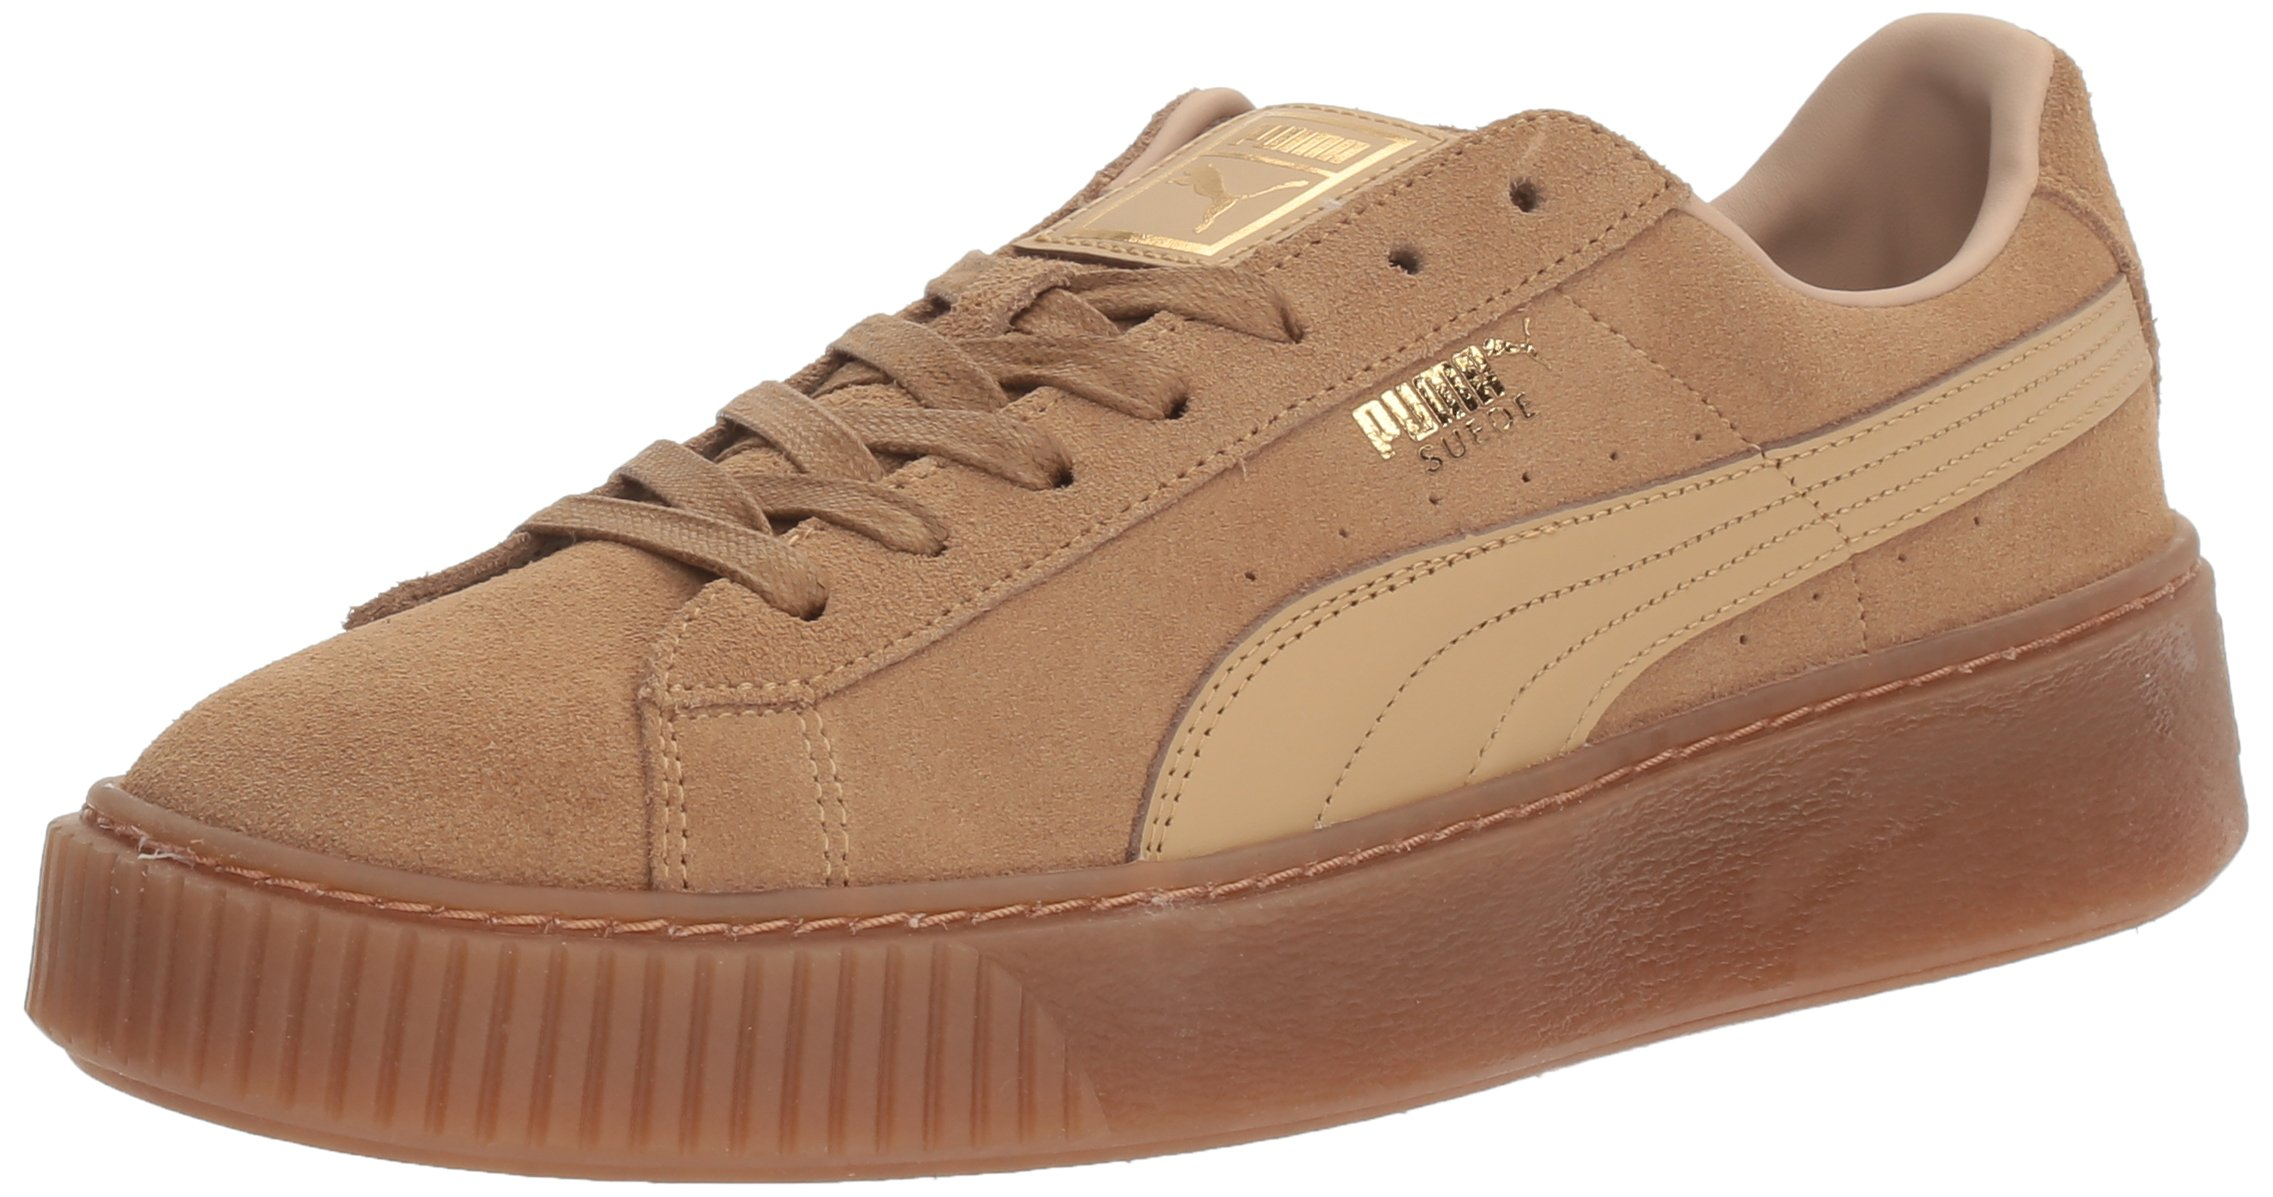 PUMA Women's Suede Platform Core, Oatmeal-Whisper White, 11 M US